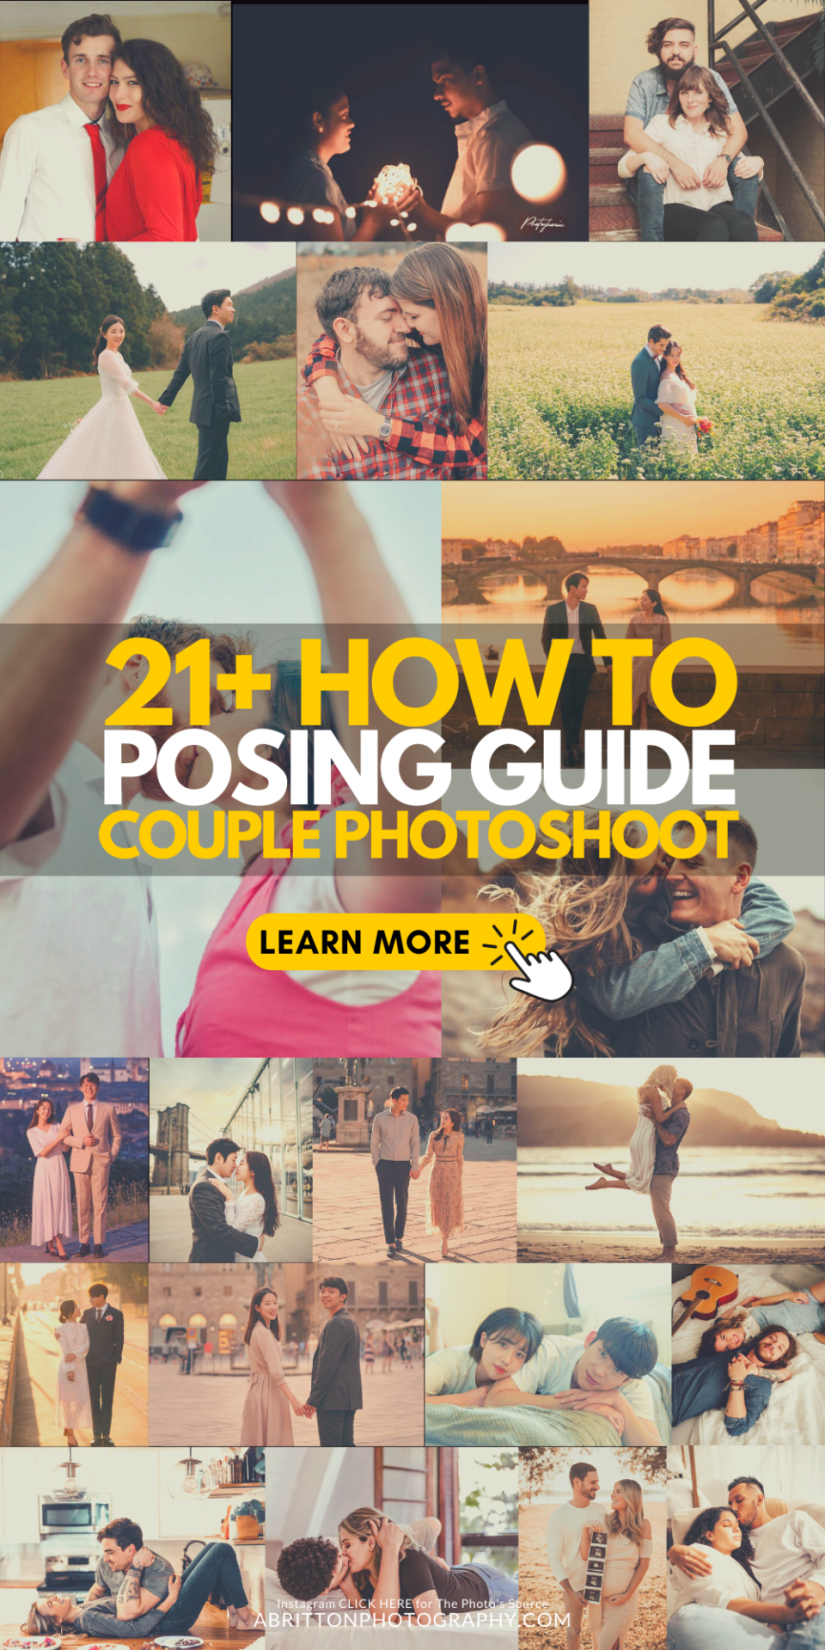 Couple Photoshoot Love Pictures Ideas and Posing Guide